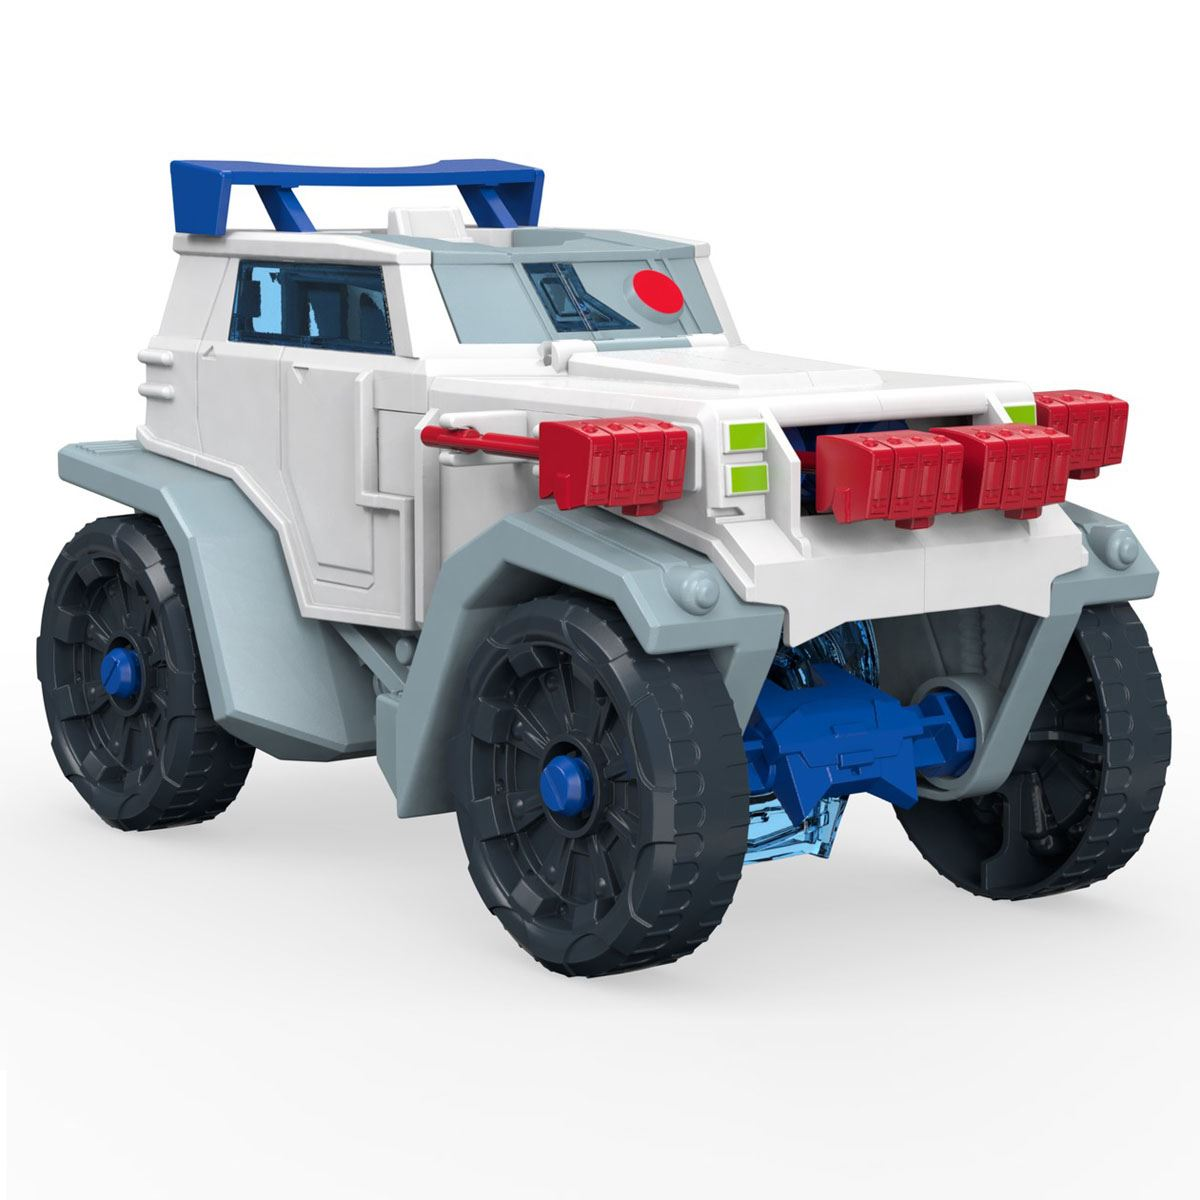 Fisher Price Imaginext Vehículo Transformable de Cyborg